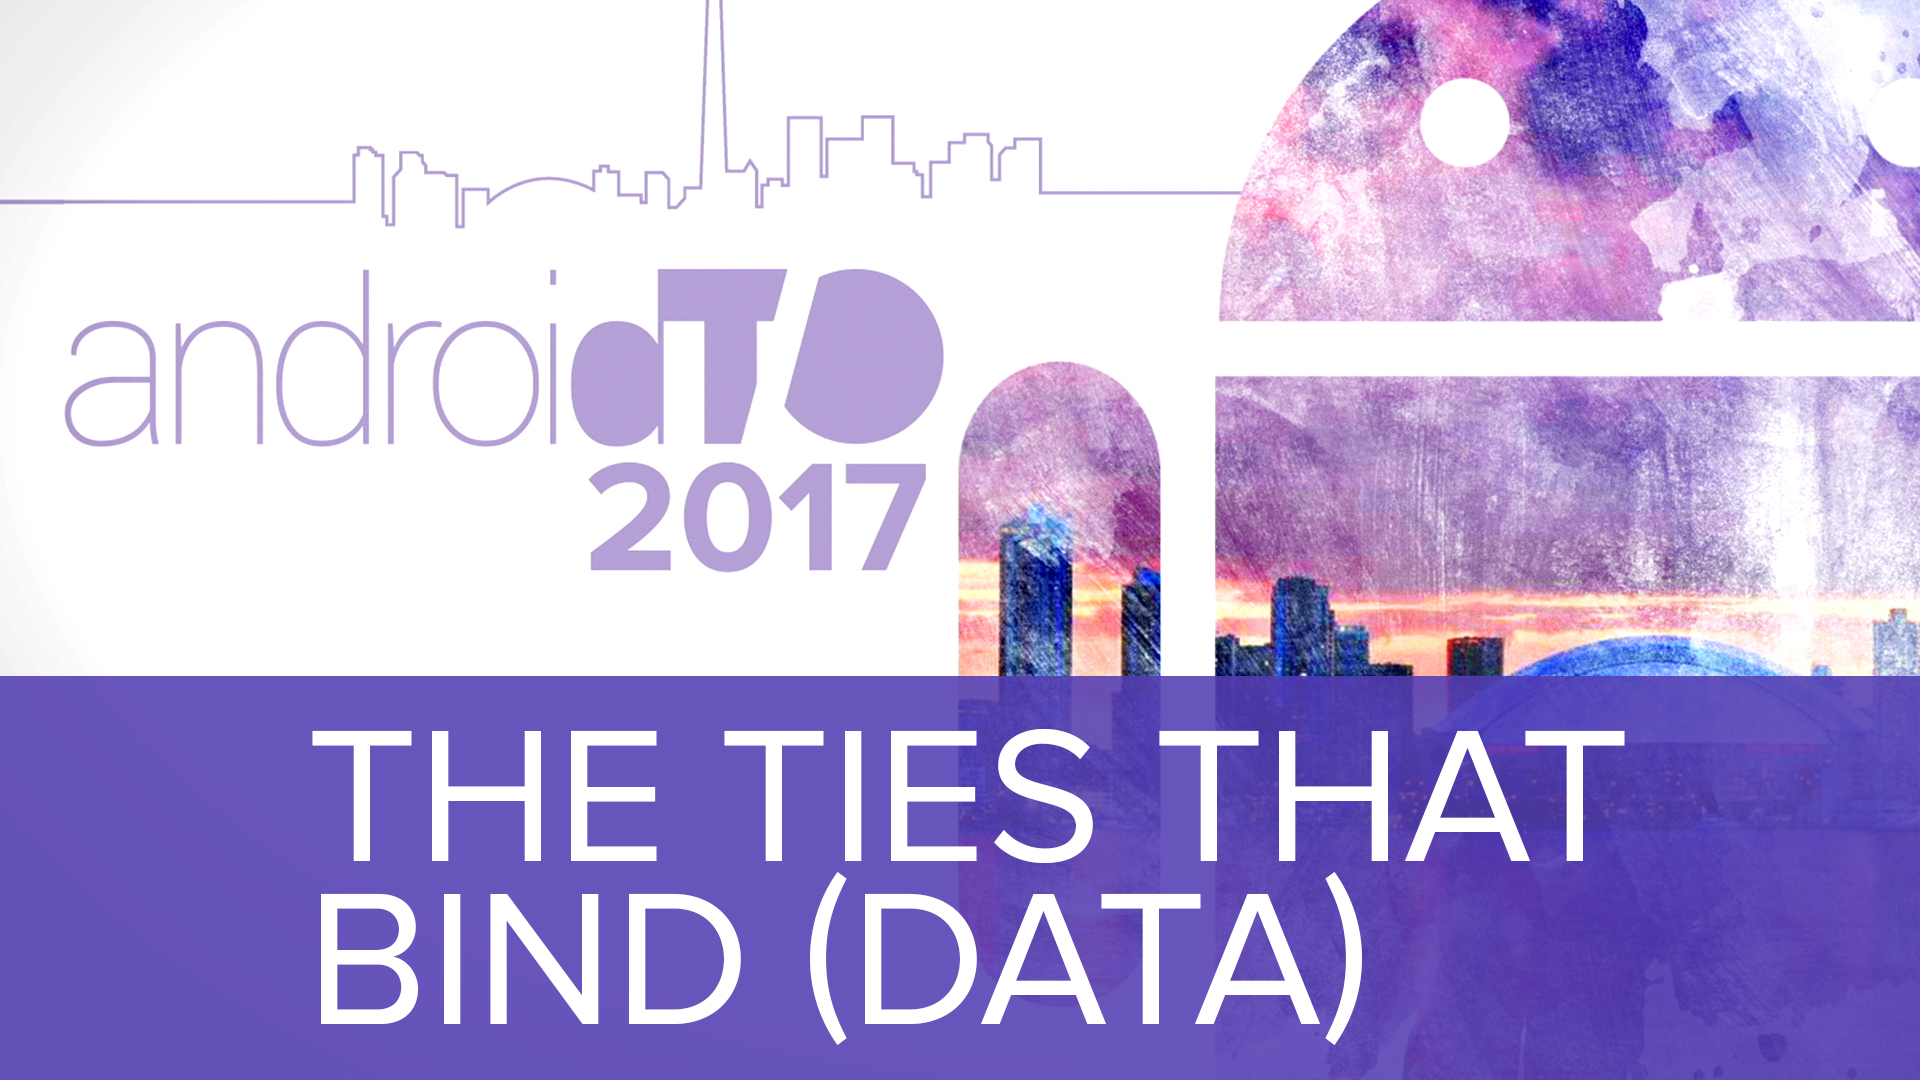 The Ties That Bind (Data) - Lisa Wray